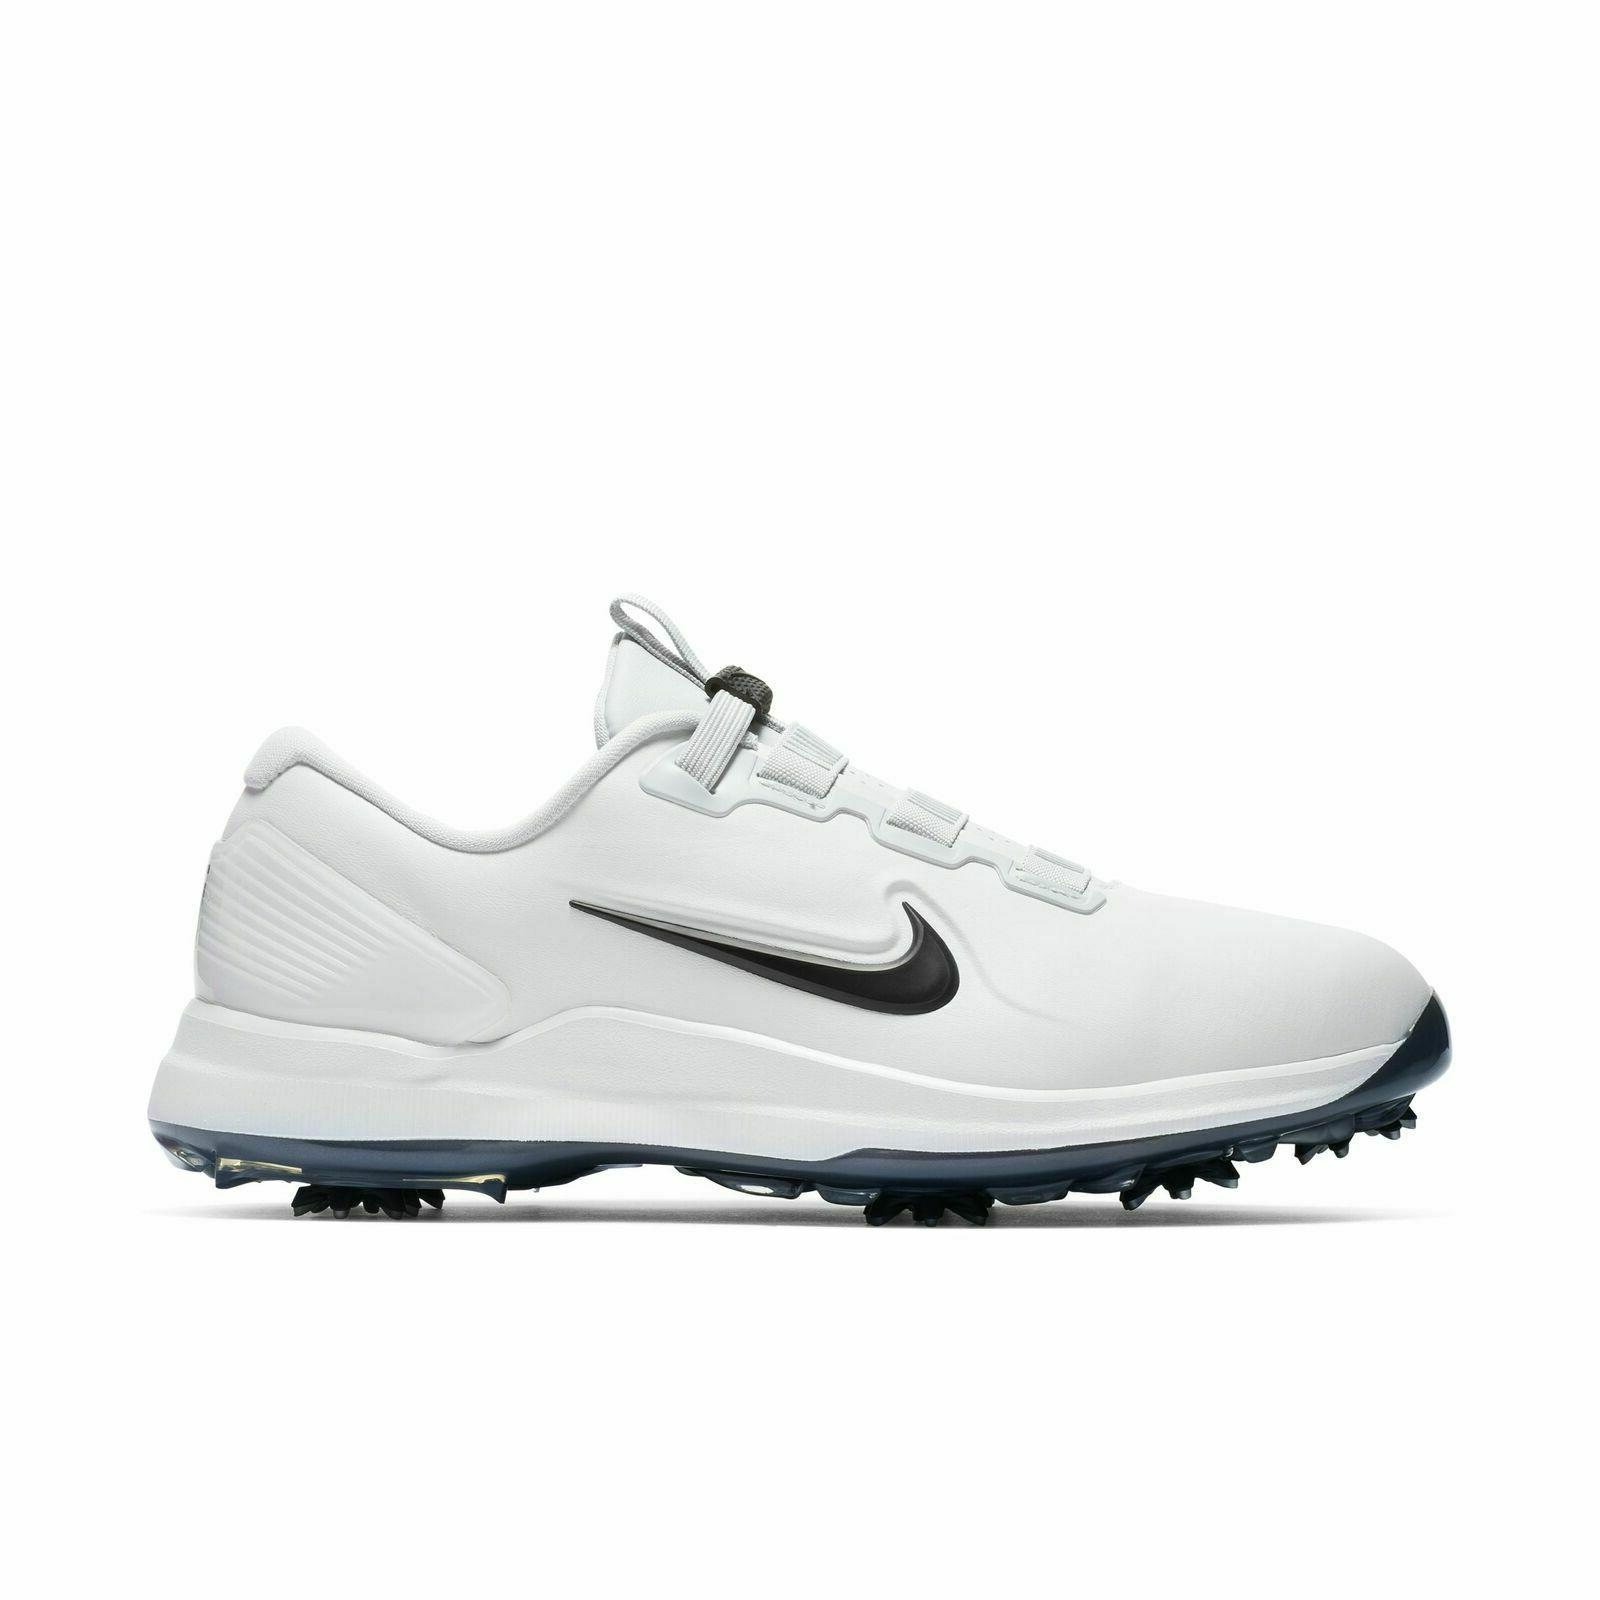 NEW Nike White Golf Shoes :